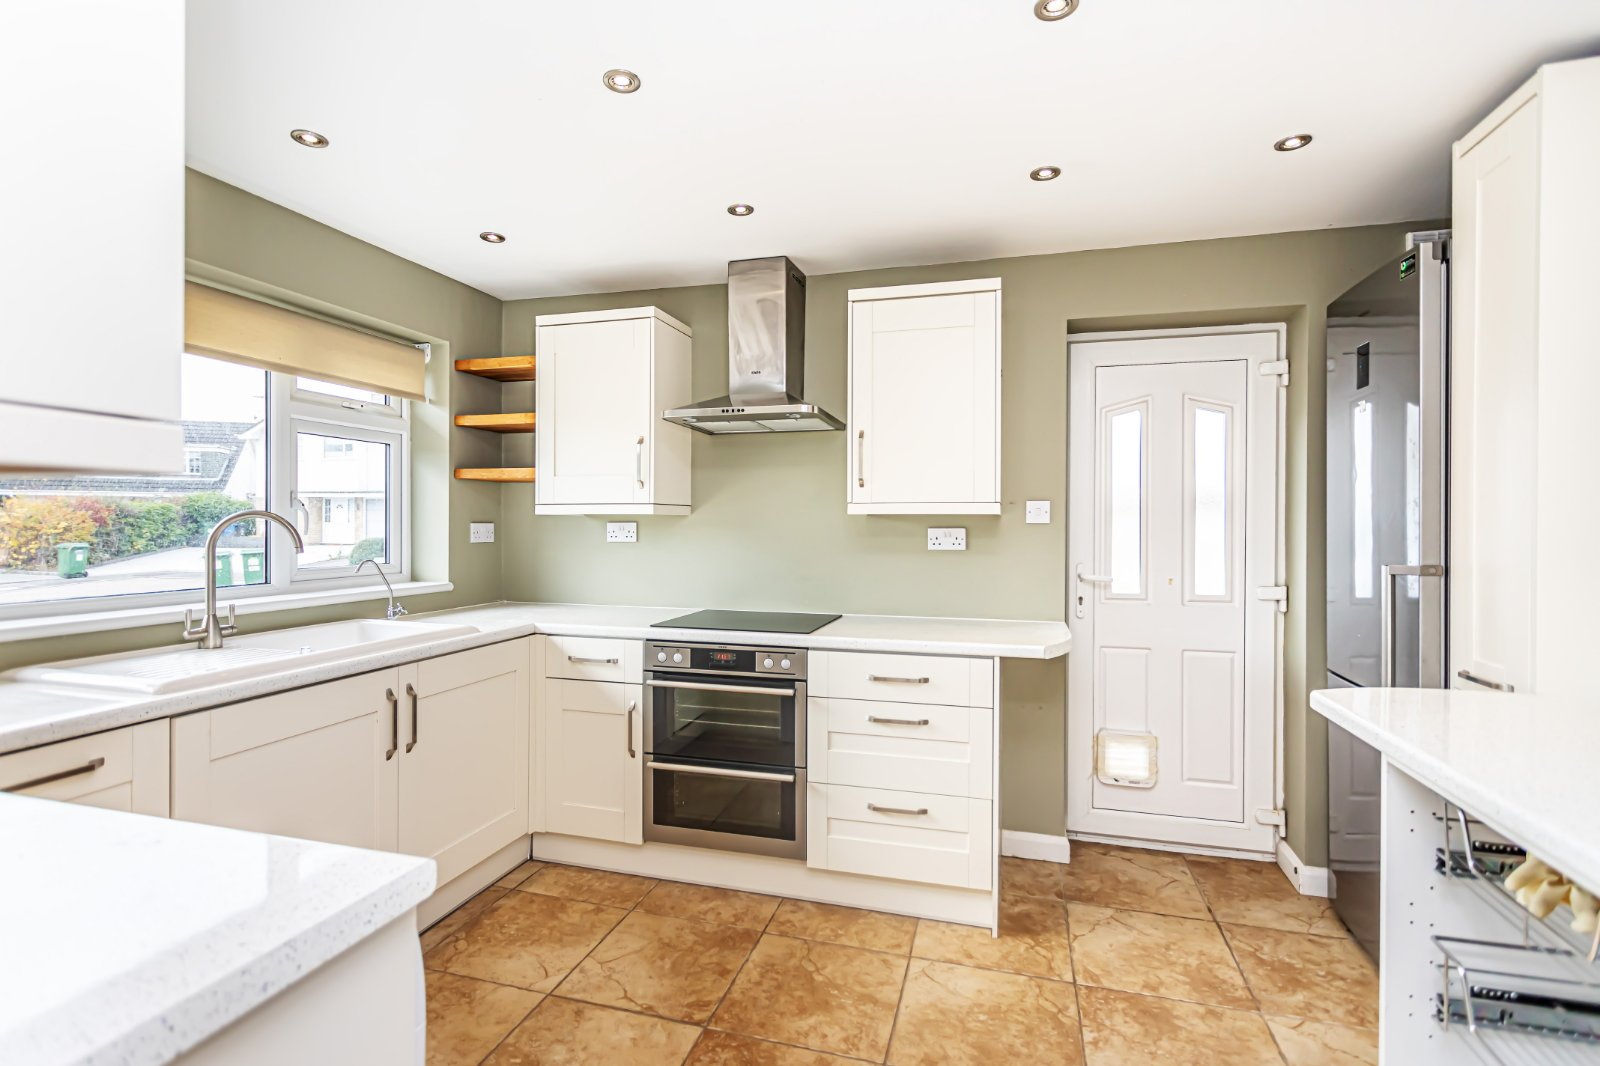 3 bed house for sale in South Western Crescent, Whitecliff, BH14